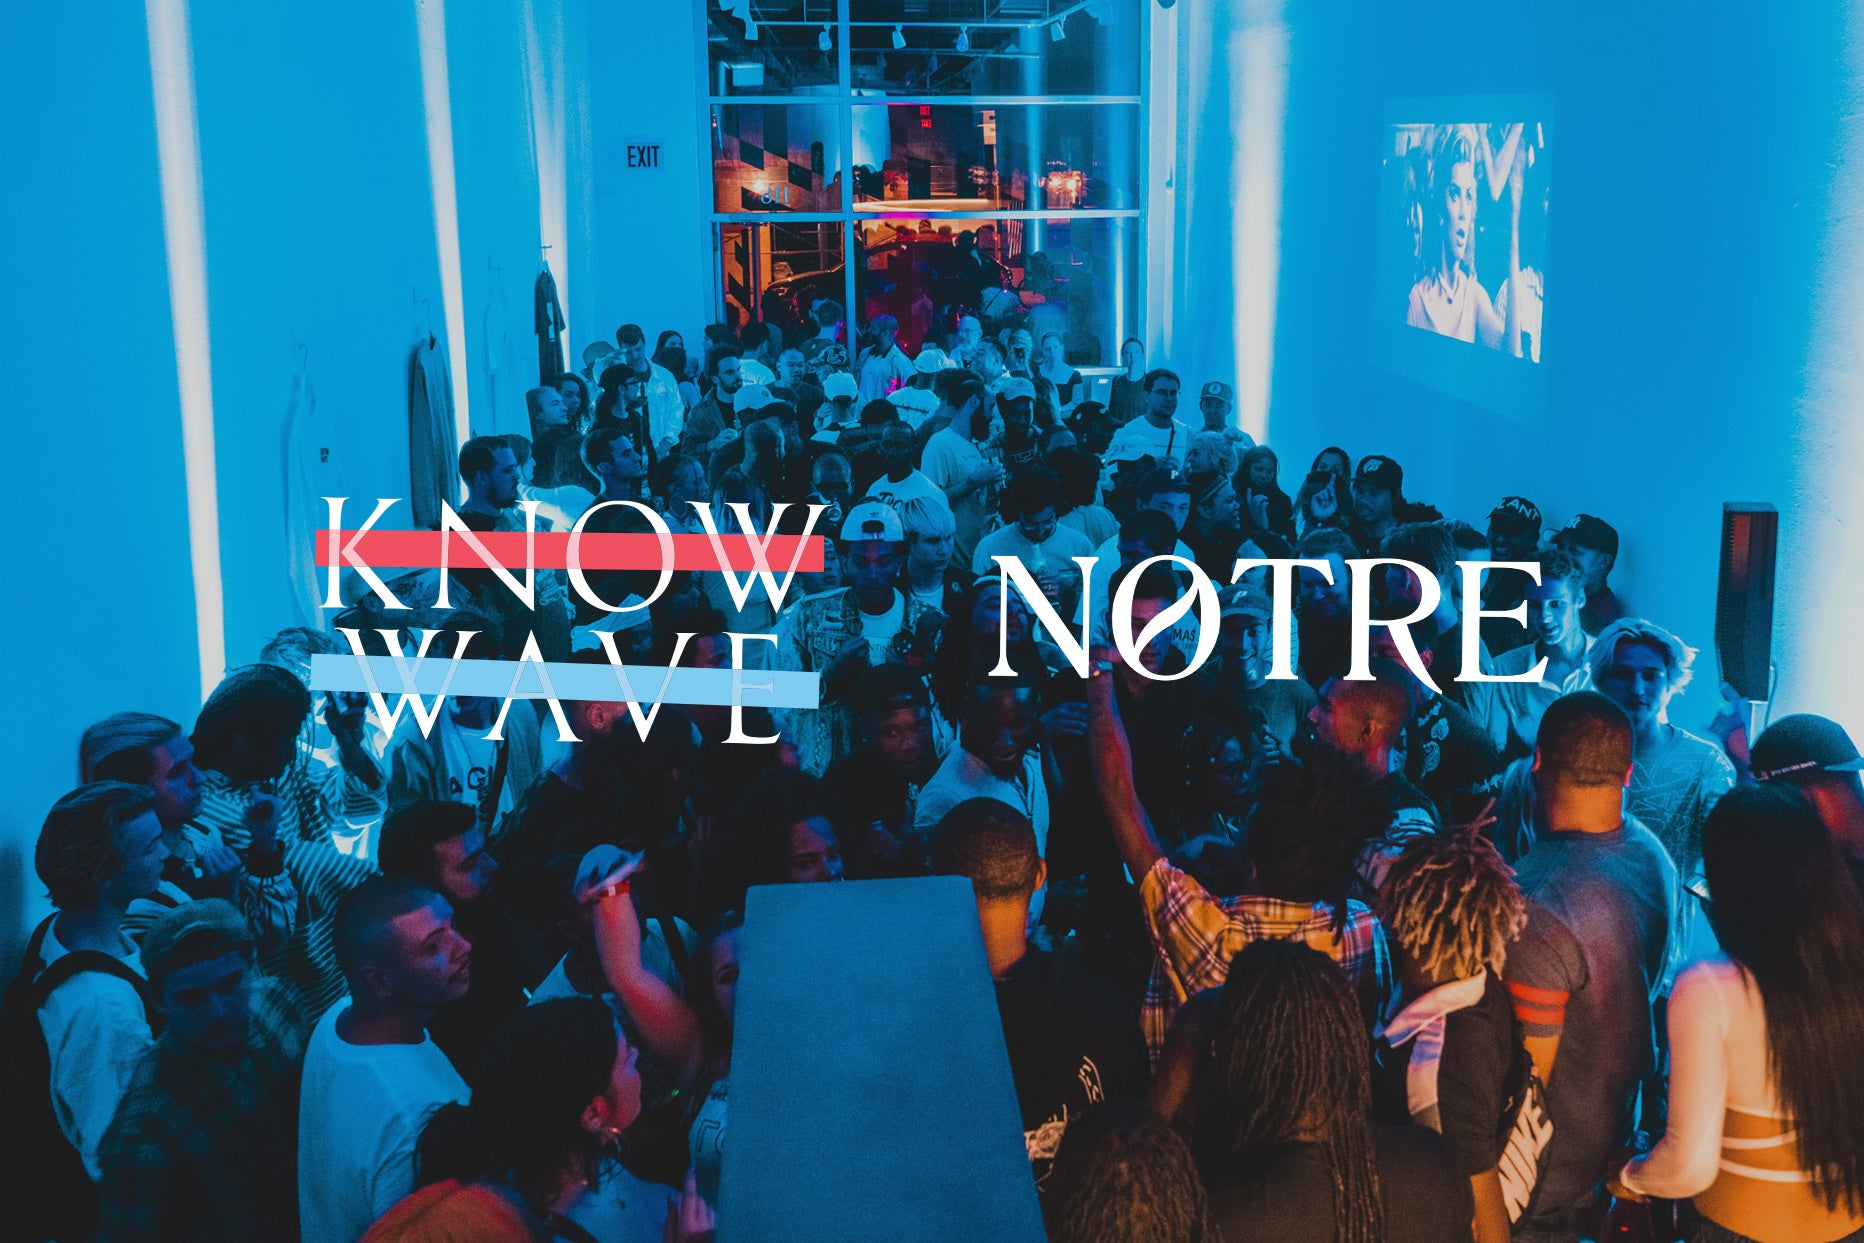 Recap: Notre Talk 06: Aaron Bondaroff and Al Moran | KNOW WAVE Afterparty at Notre